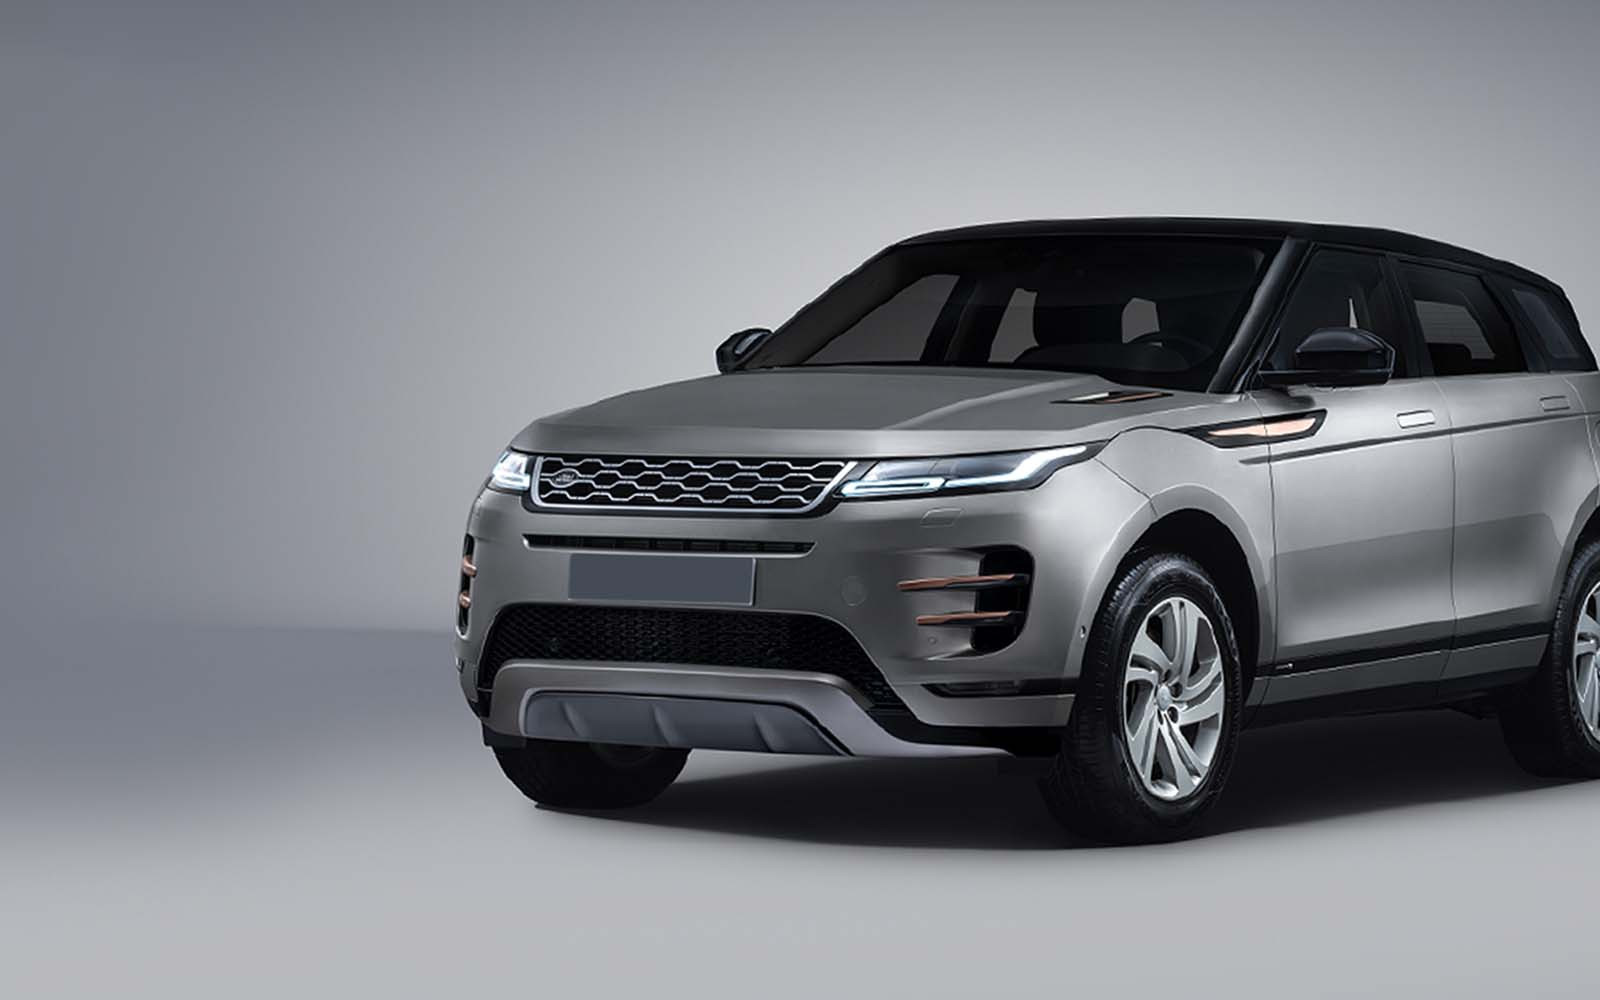 ABRITES KEY PROGRAMMING SOLUTIONS FOR JLR VEHICLES